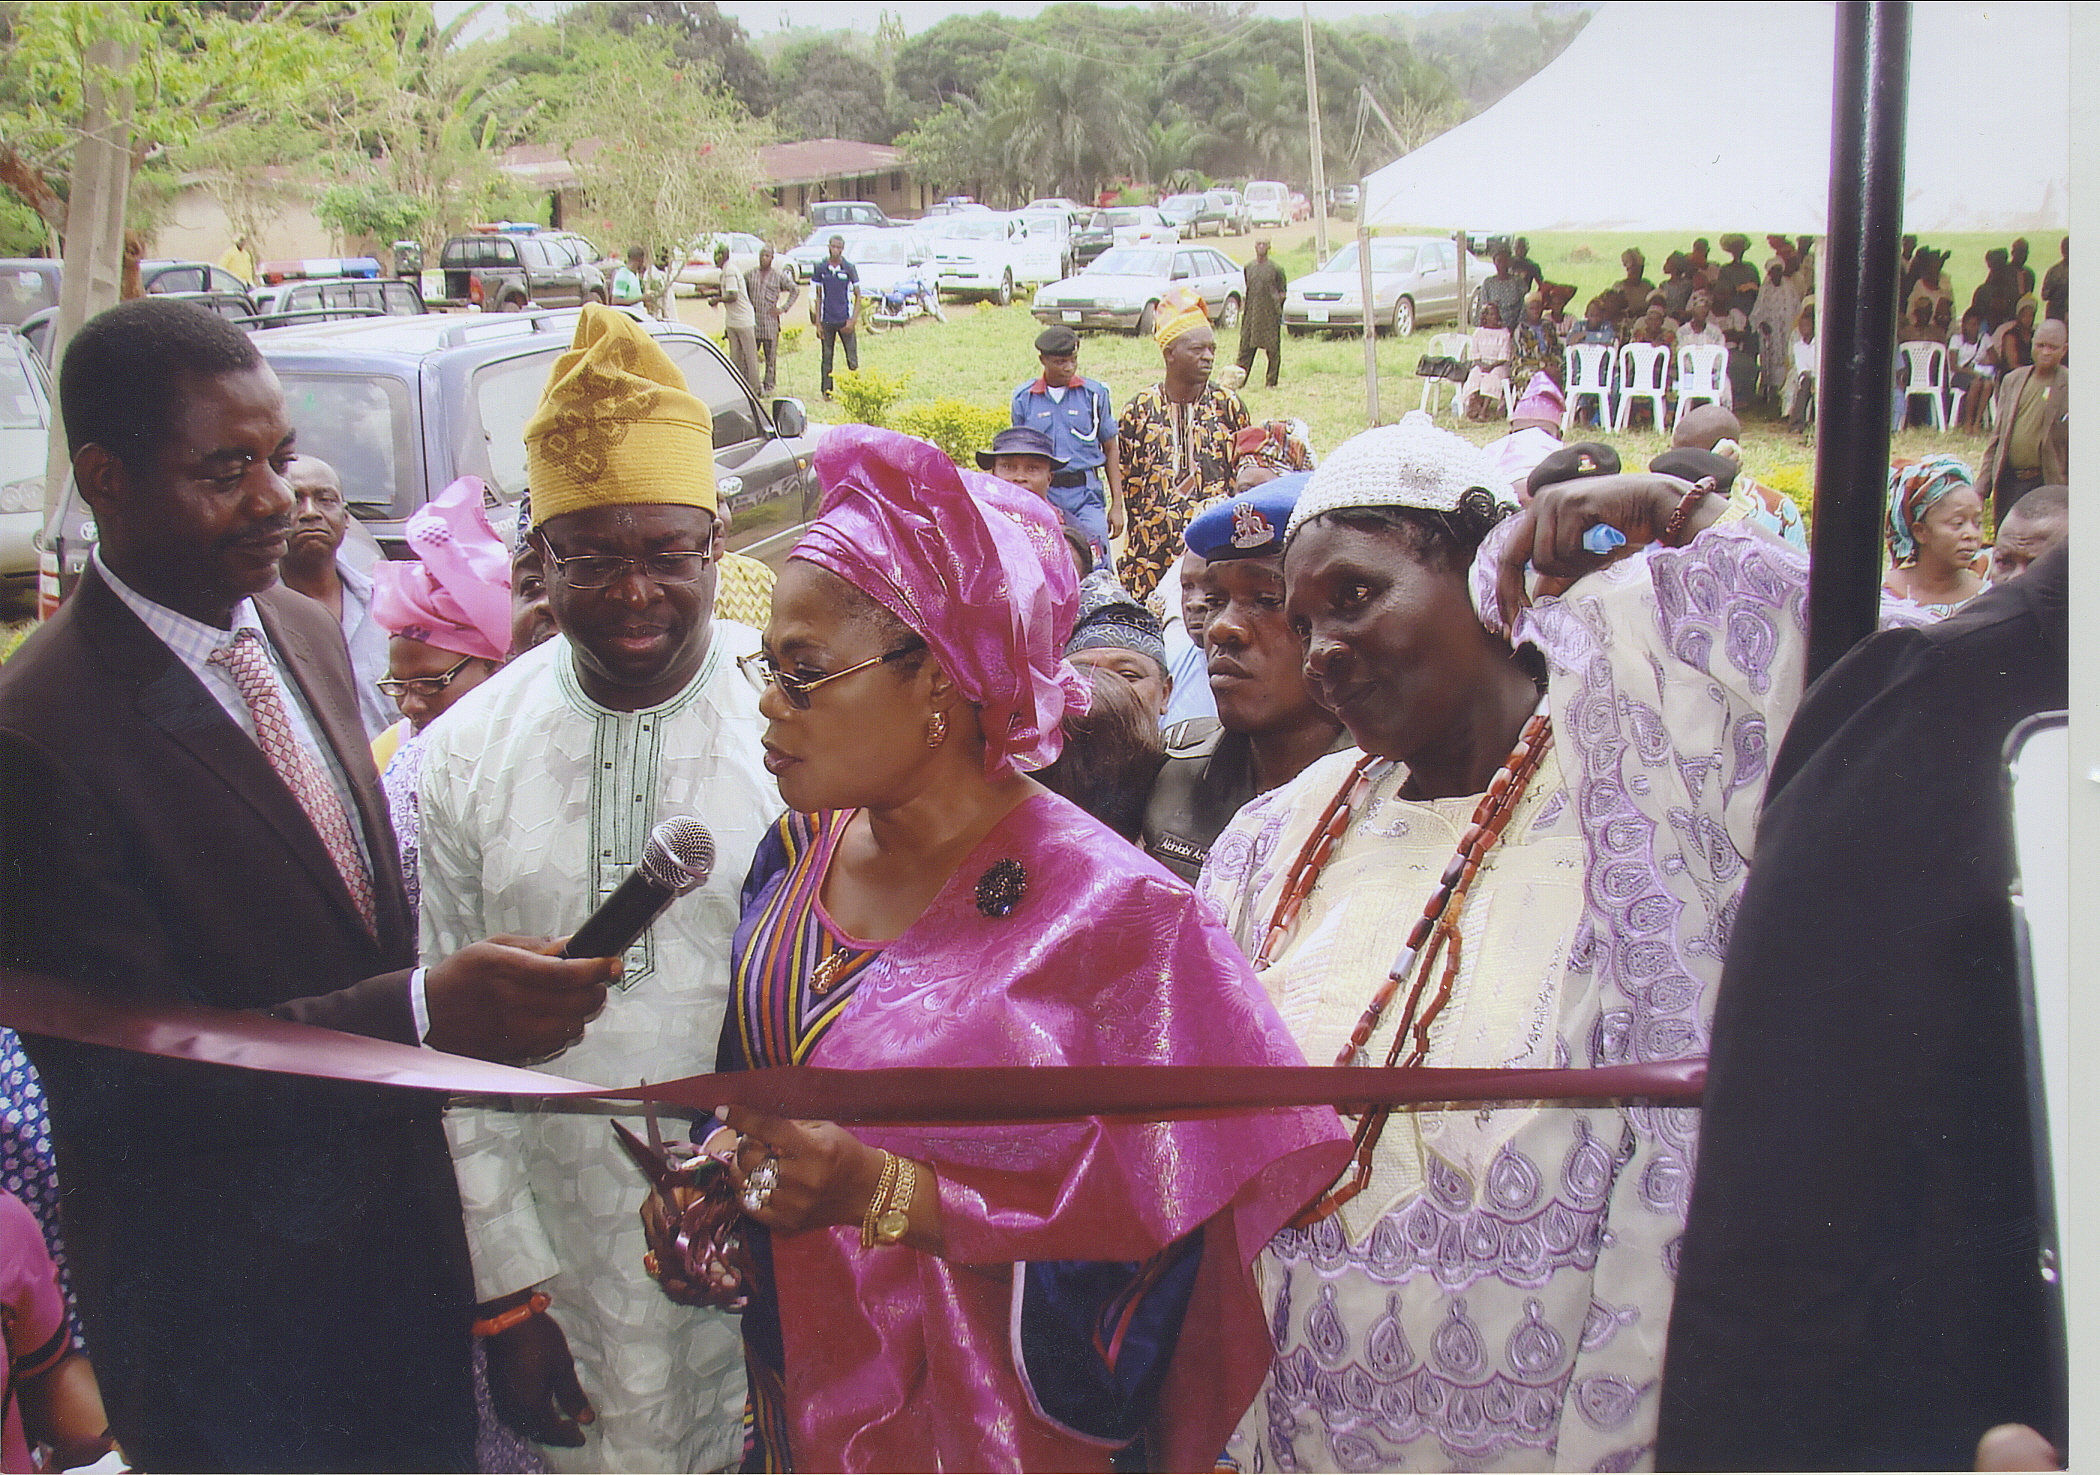 Cutting Of Ribbon With The Deputy Governor Of Osun State, The Regent Of Ere-Ijesha And Dr Ajifolokun Surrounded By Other Dignitaries.